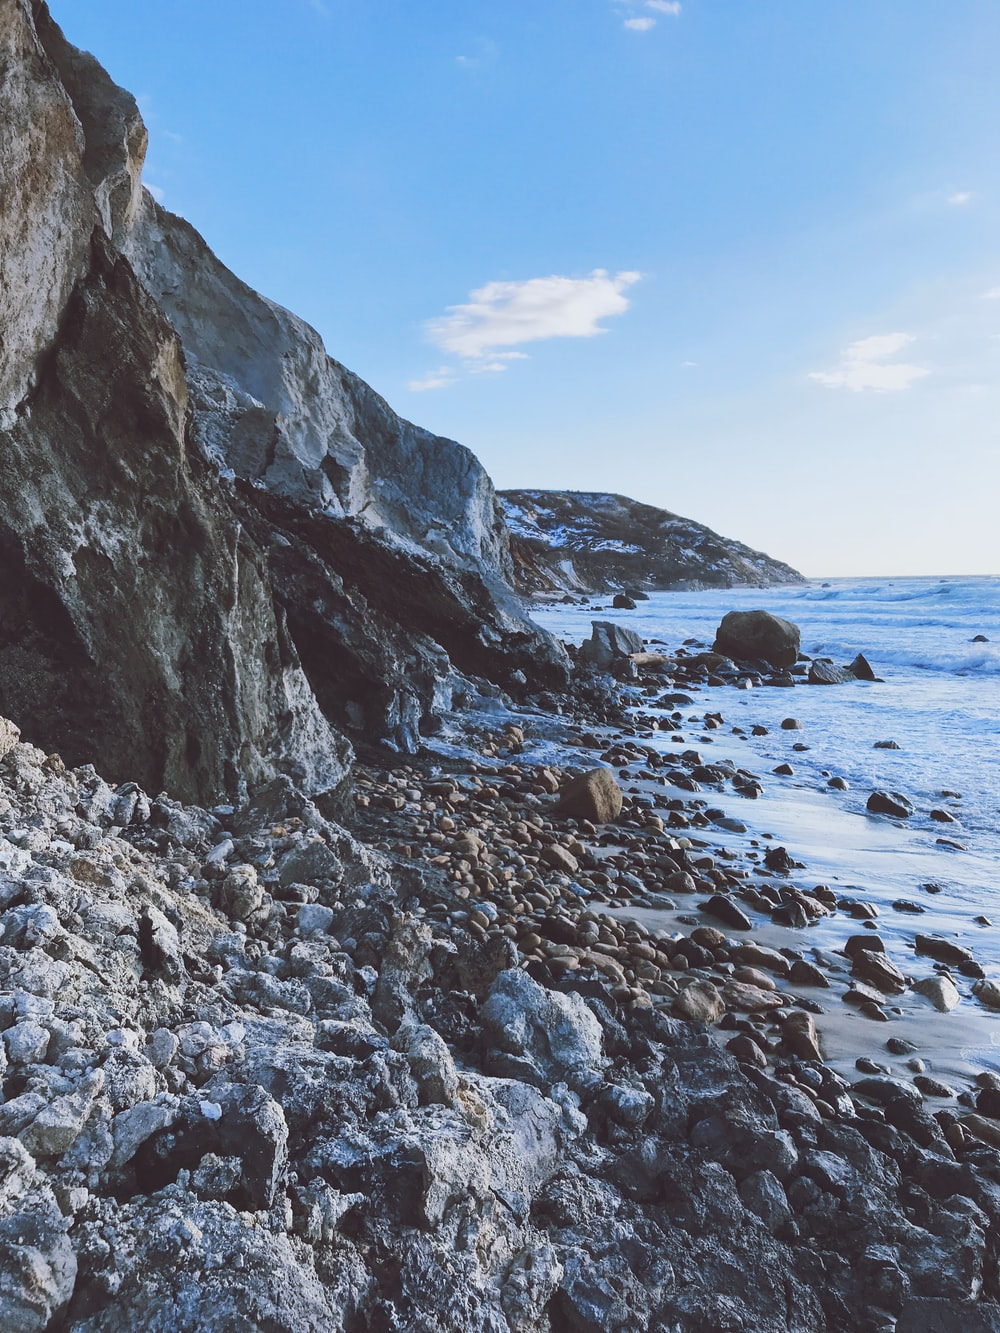 rocky shore with rocks under blue sky during daytime